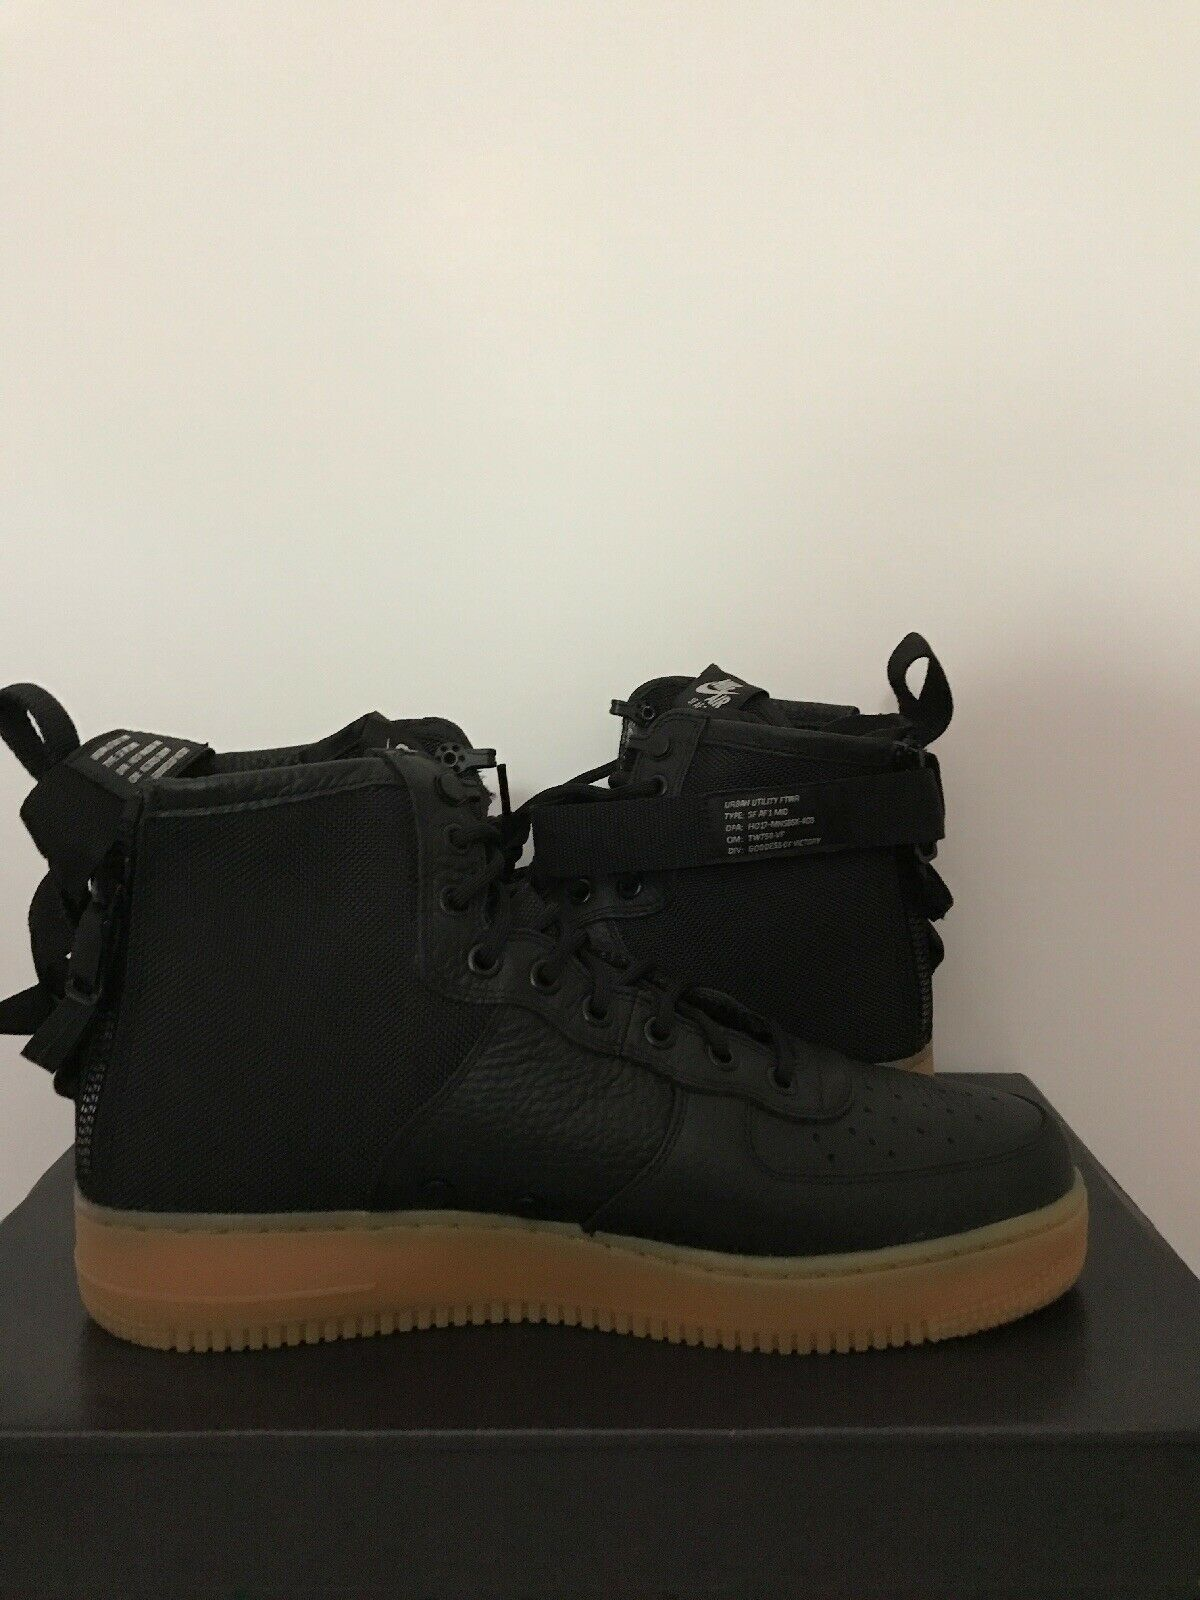 Nike  Air Force 1 High nero Court viola Sz 11 315121 -021 (2012 -13 Release)  risparmiare fino all'80%